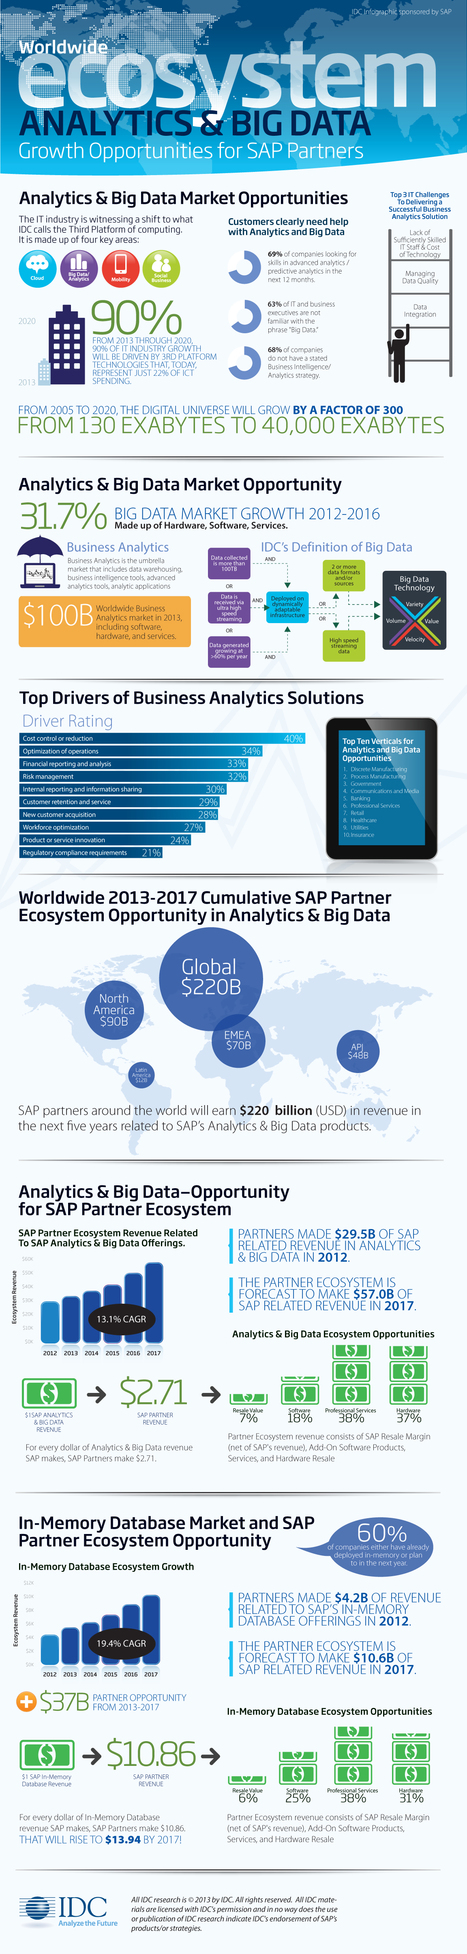 INFOGRAPHIC: Worldwide Big Data Ecosystem | Cloud Central | Scoop.it